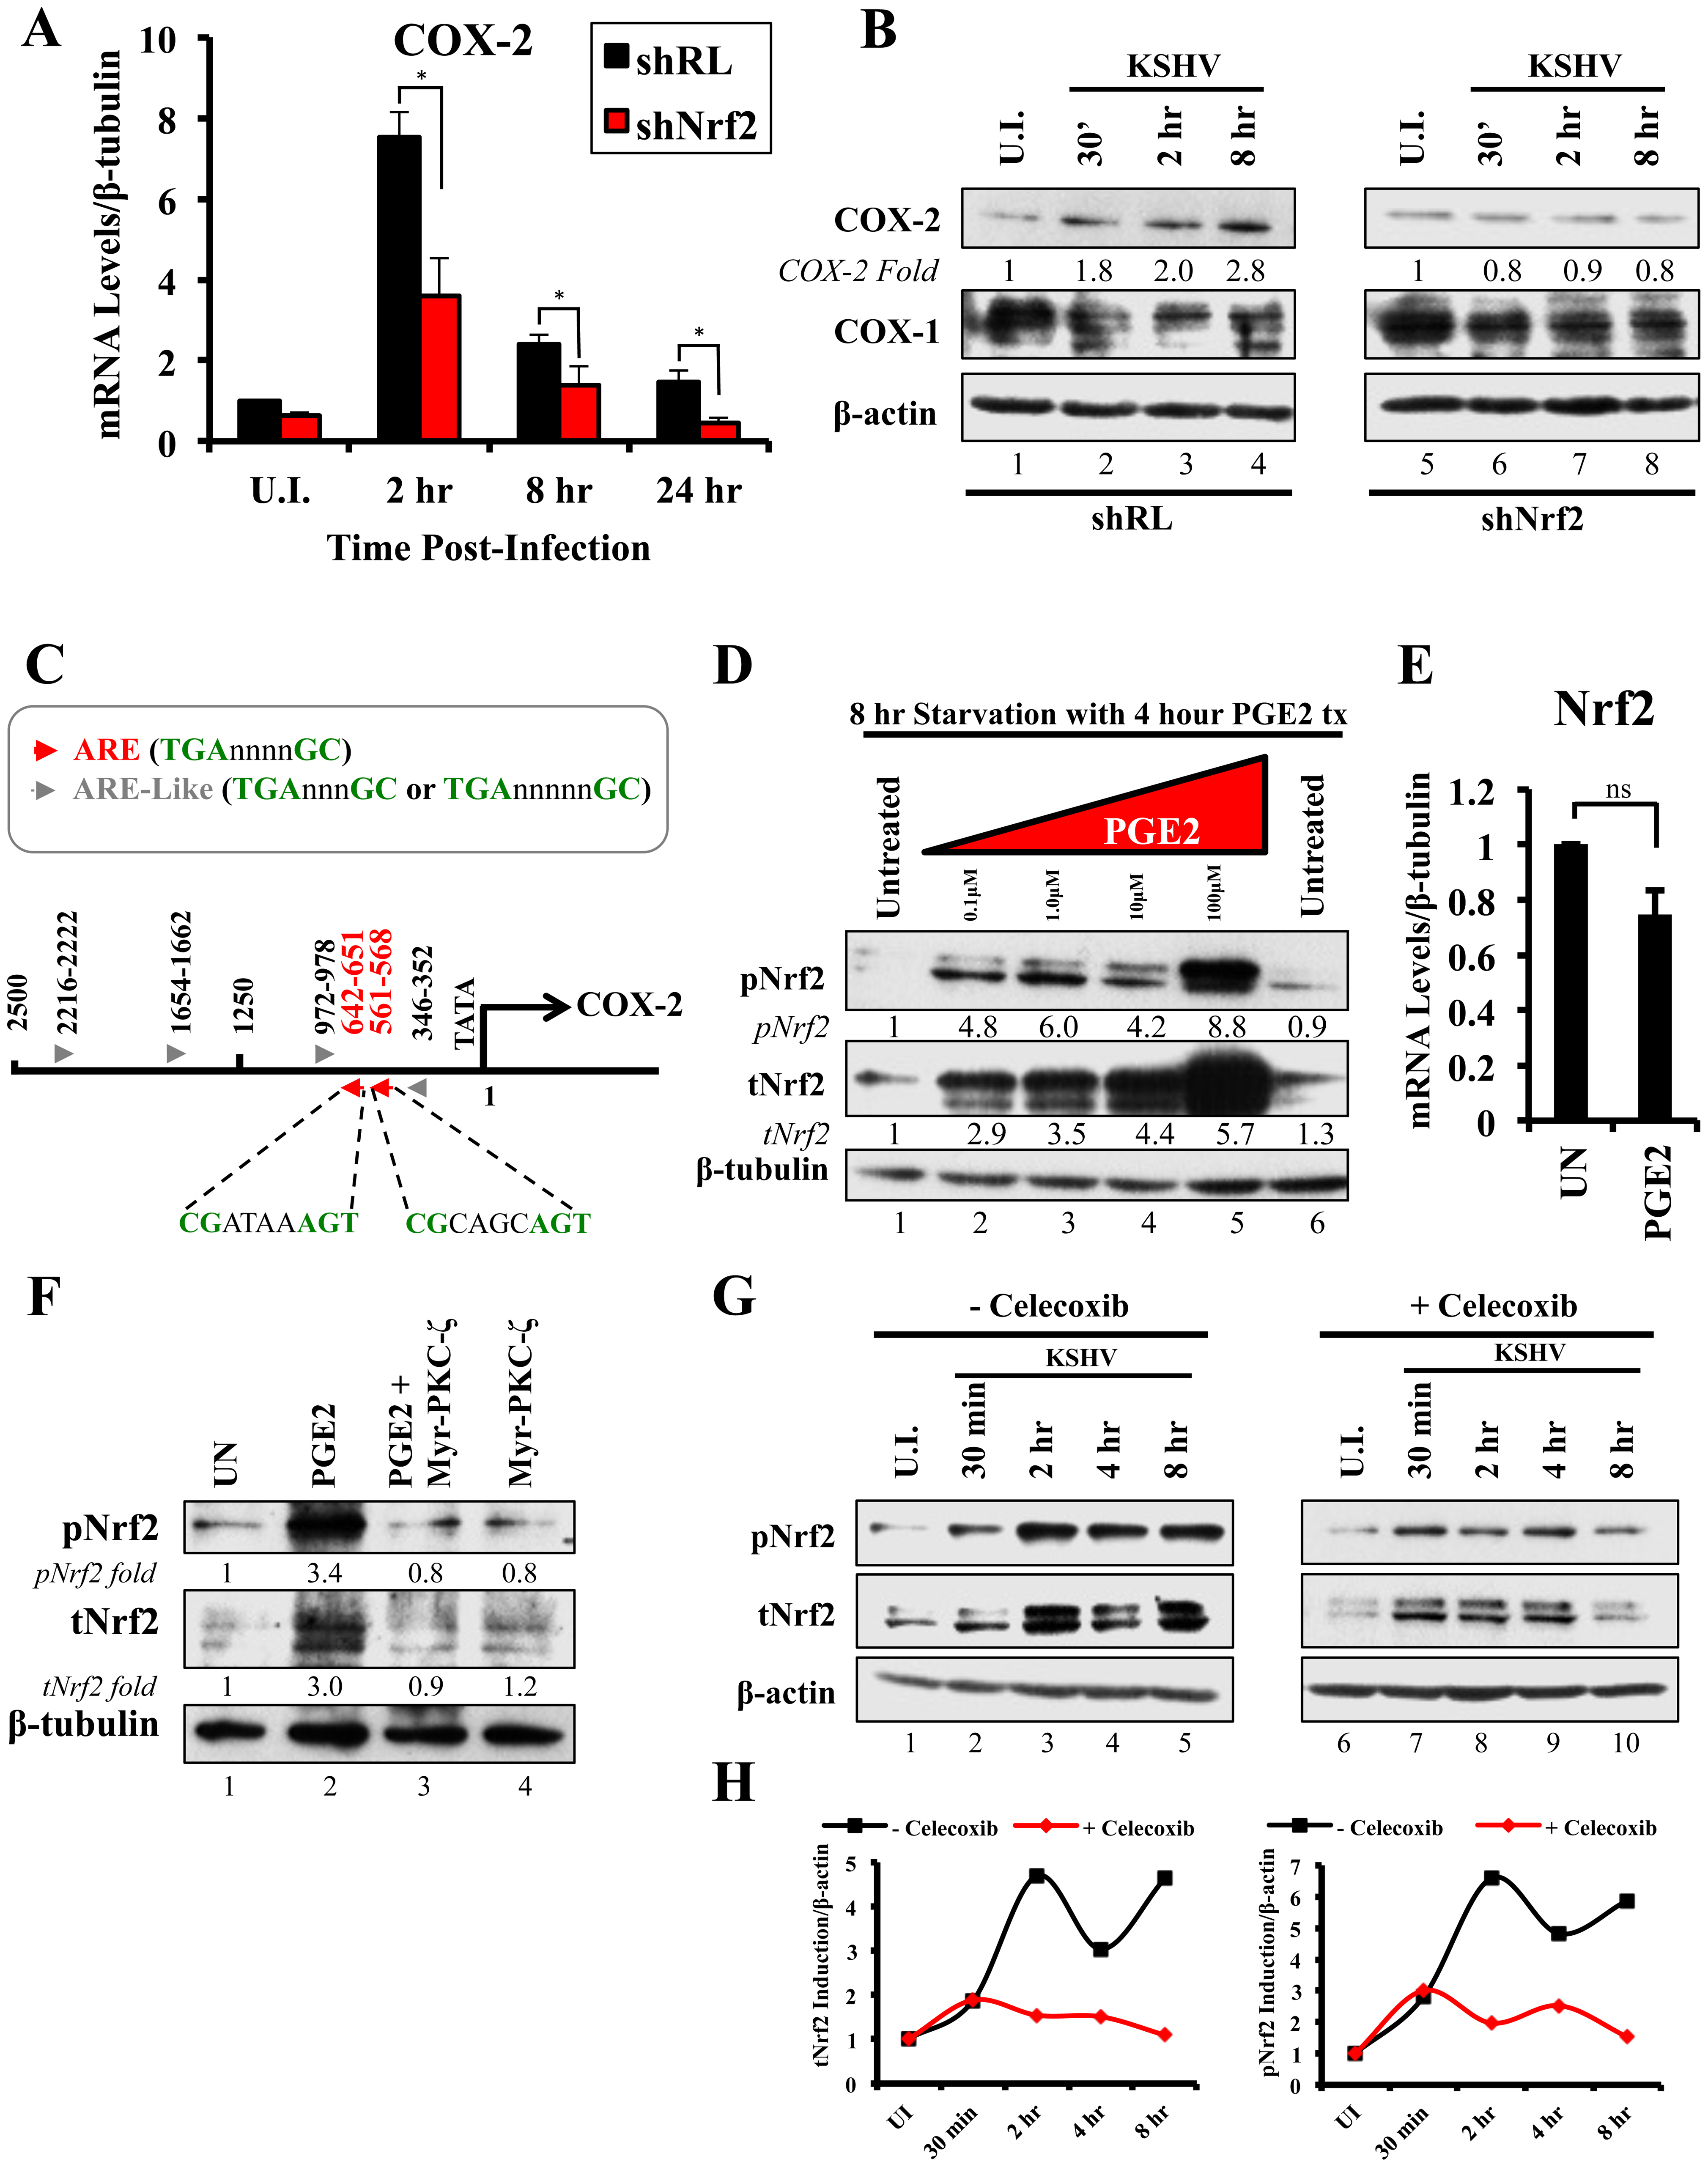 KSHV infection and the Nrf2-COX-2-PGE2 loop.